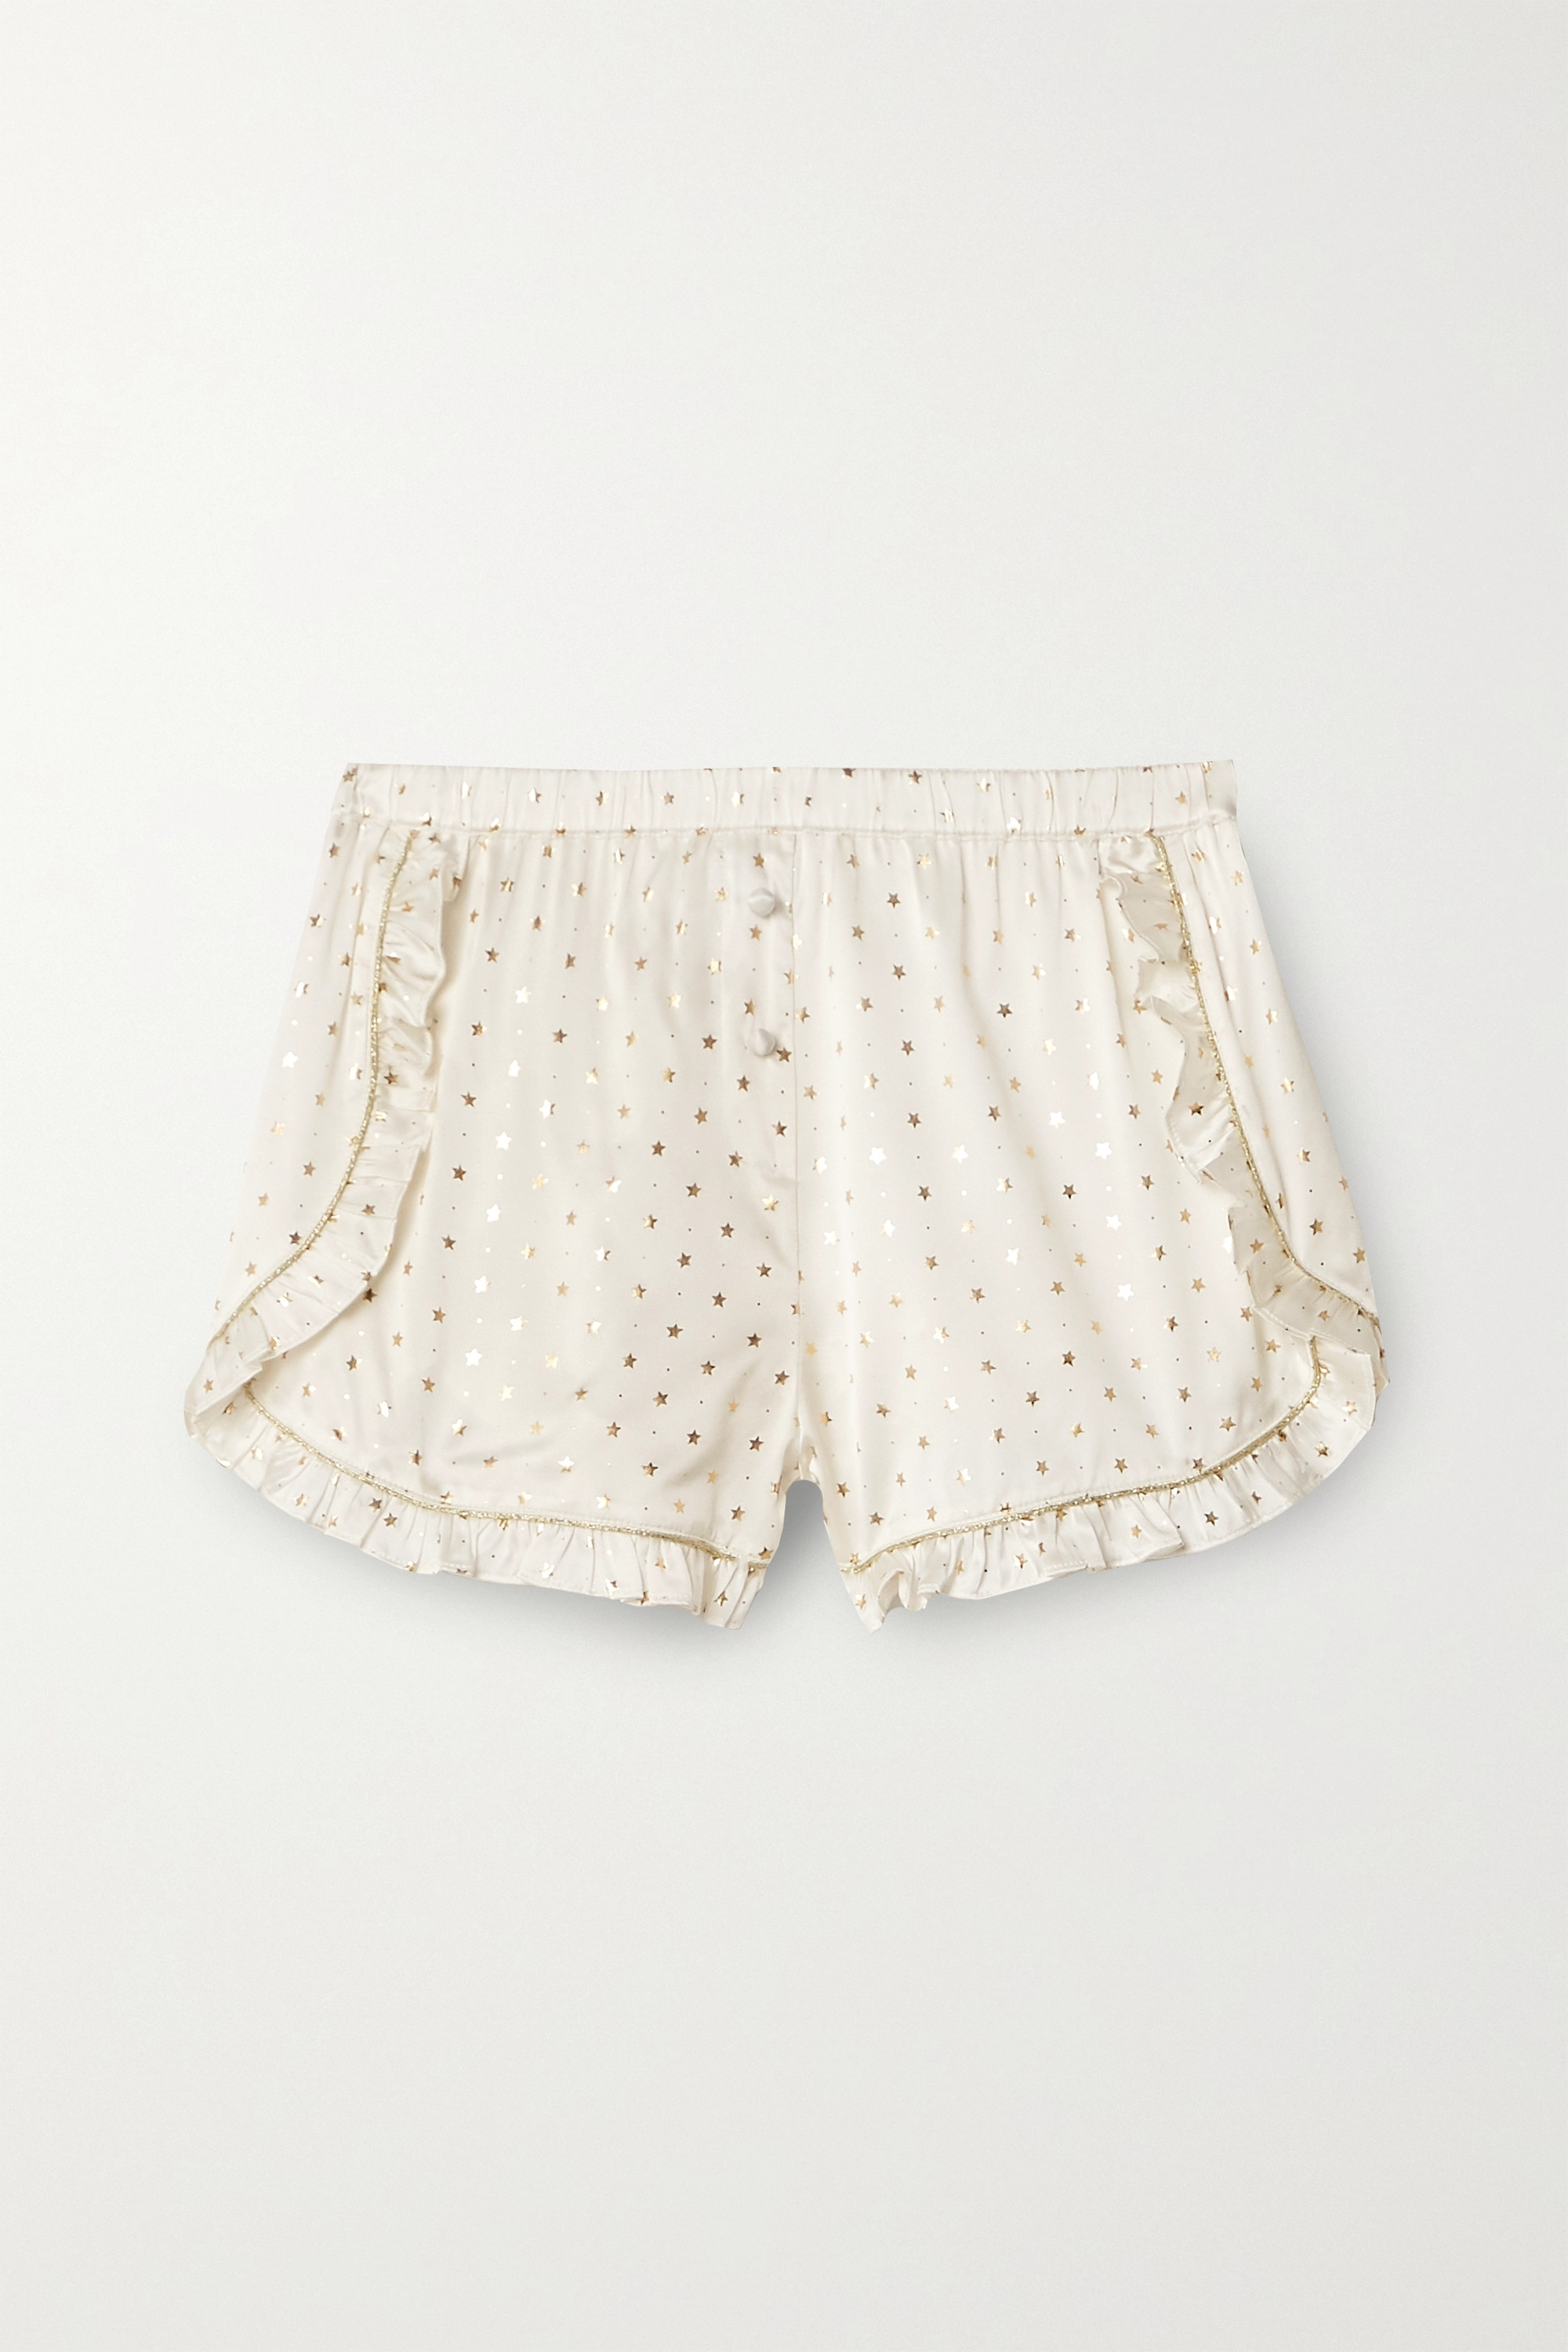 MORGAN LANE Esti ruffled metallic-trimmed printed silk-blend satin pajama shorts